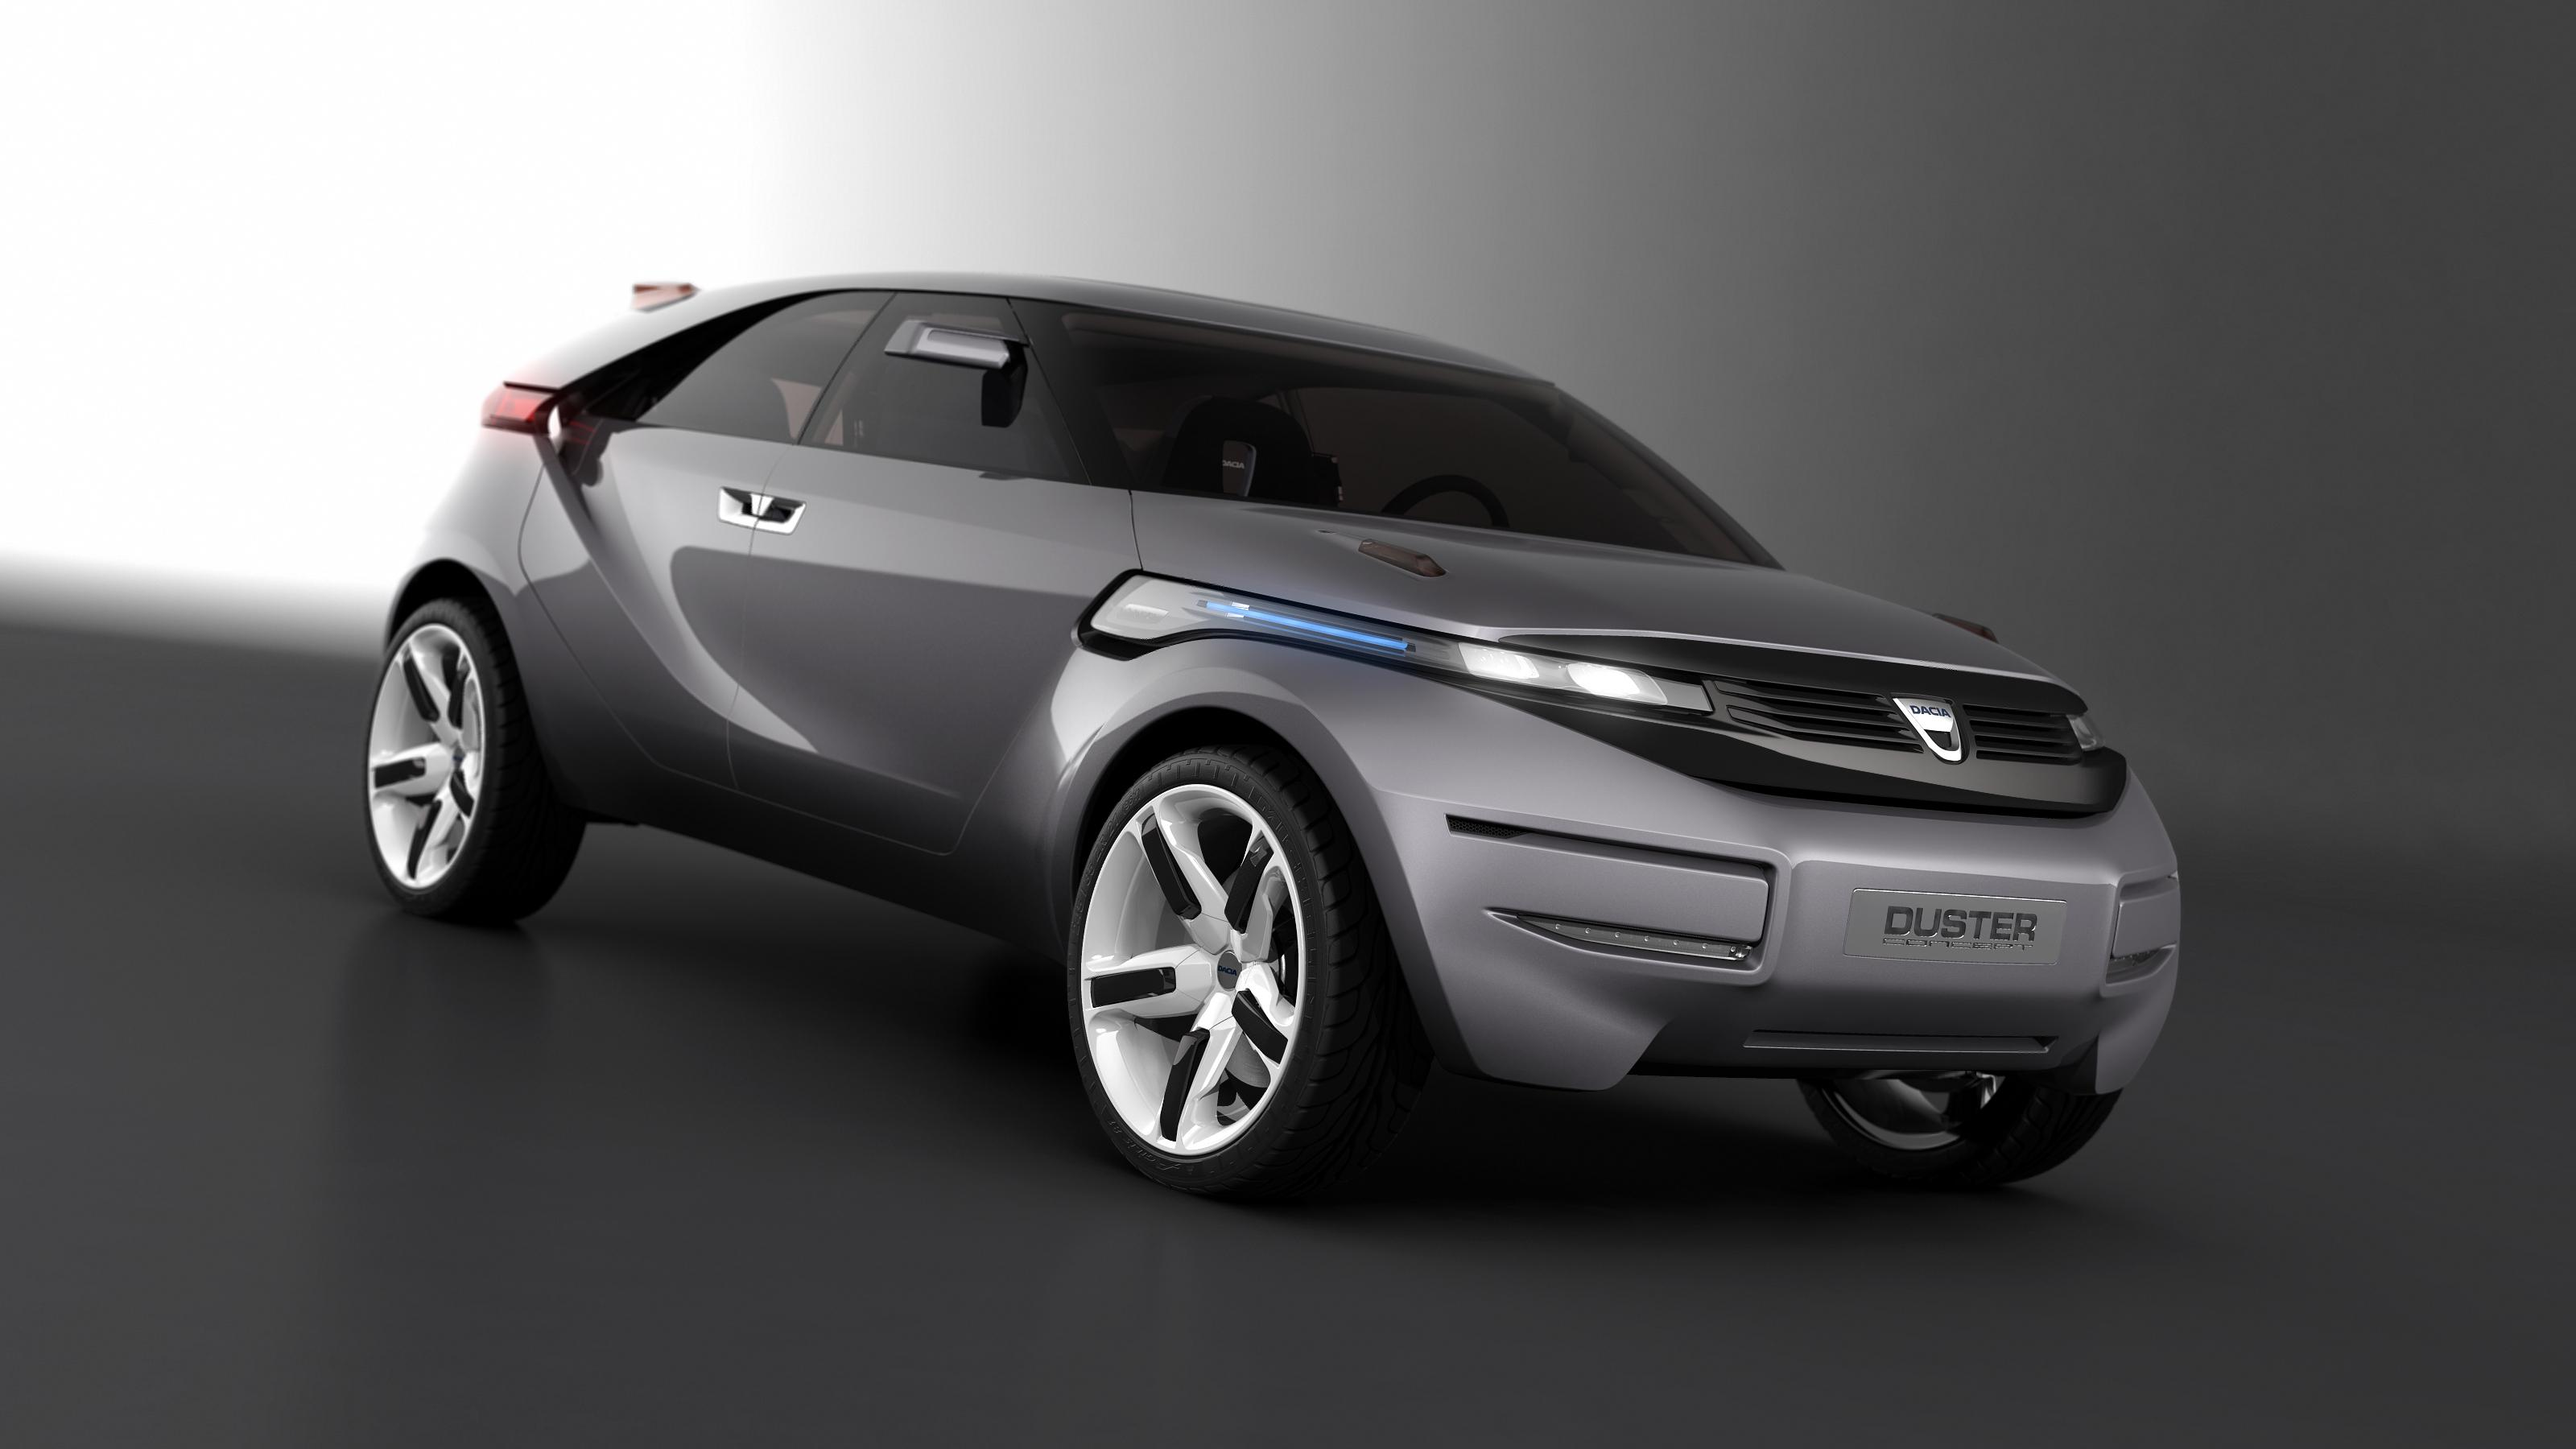 dacia duster crossover concept unveiled at geneva motor show. Black Bedroom Furniture Sets. Home Design Ideas